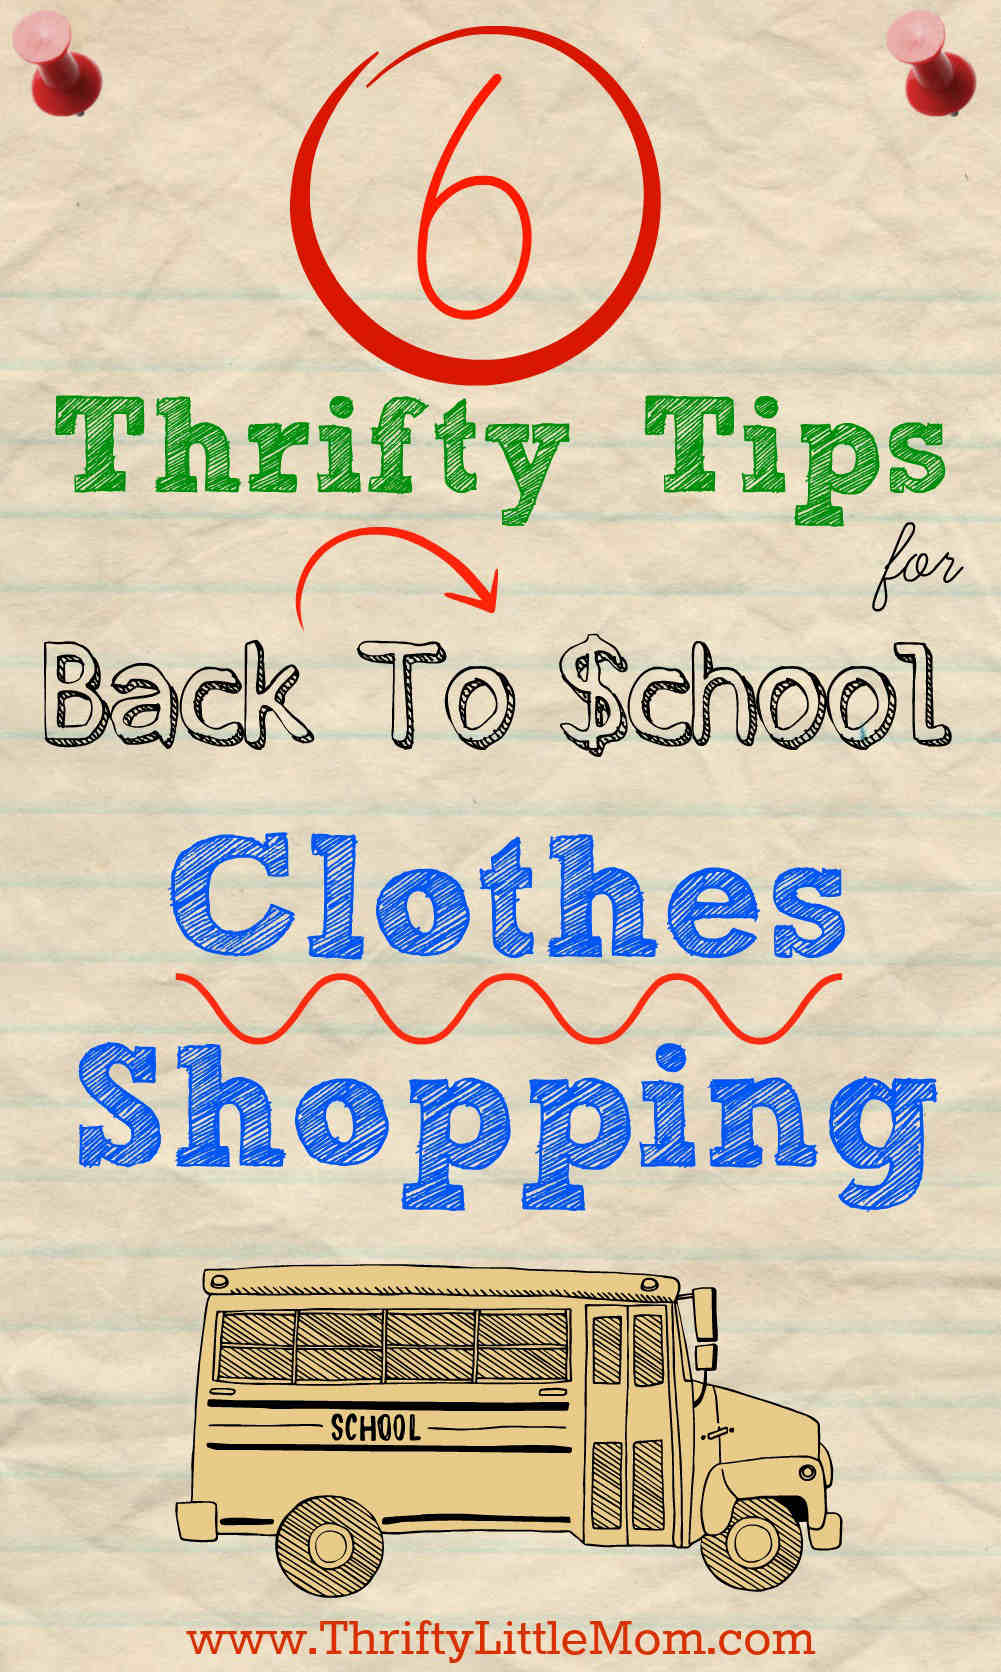 6 Thrifty Tips for Back to School Clothes Shopping